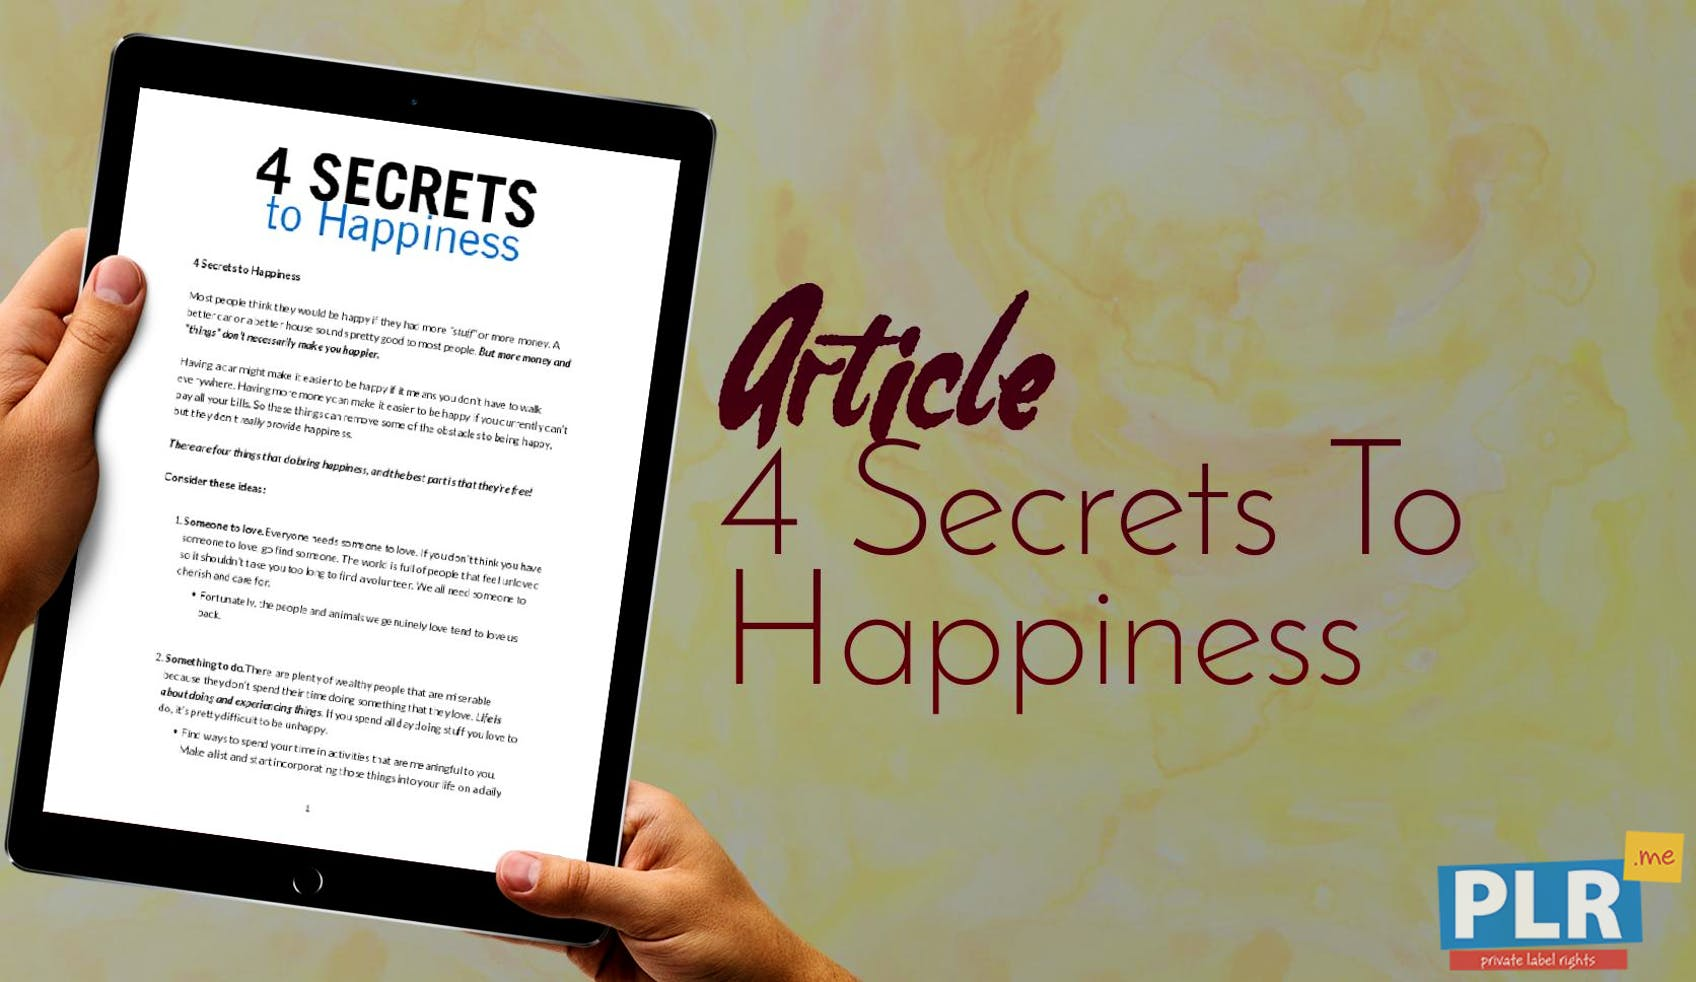 Most Blog Posts These Days Are Pretty >> Plr Articles Blog Posts 4 Secrets To Happiness Plr Me